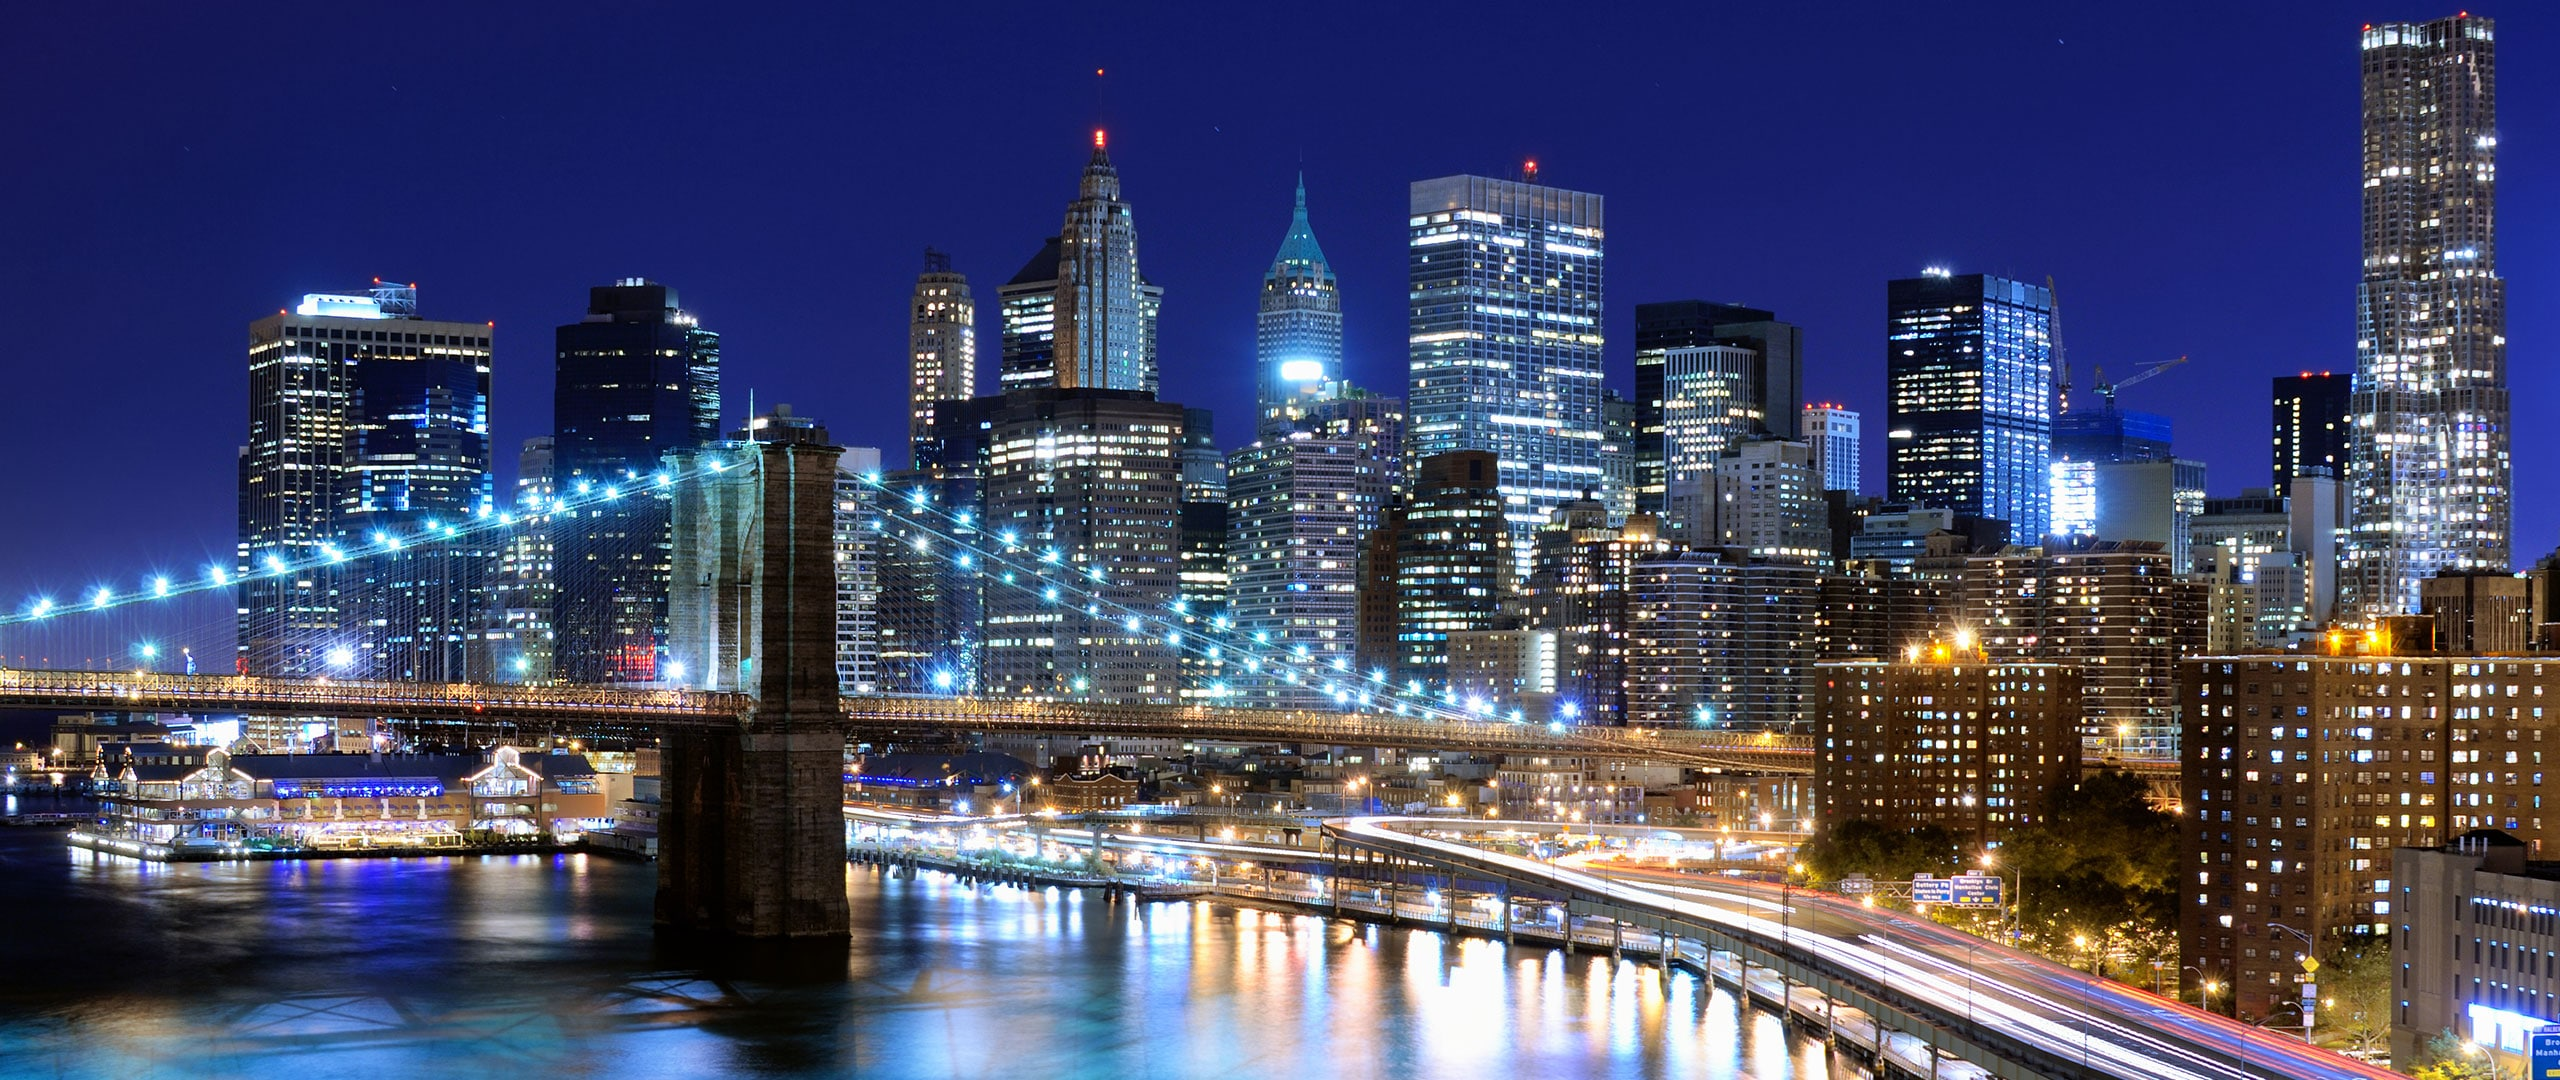 Soluxio smart city zonne-energie lichtmast straatverlichting in New York